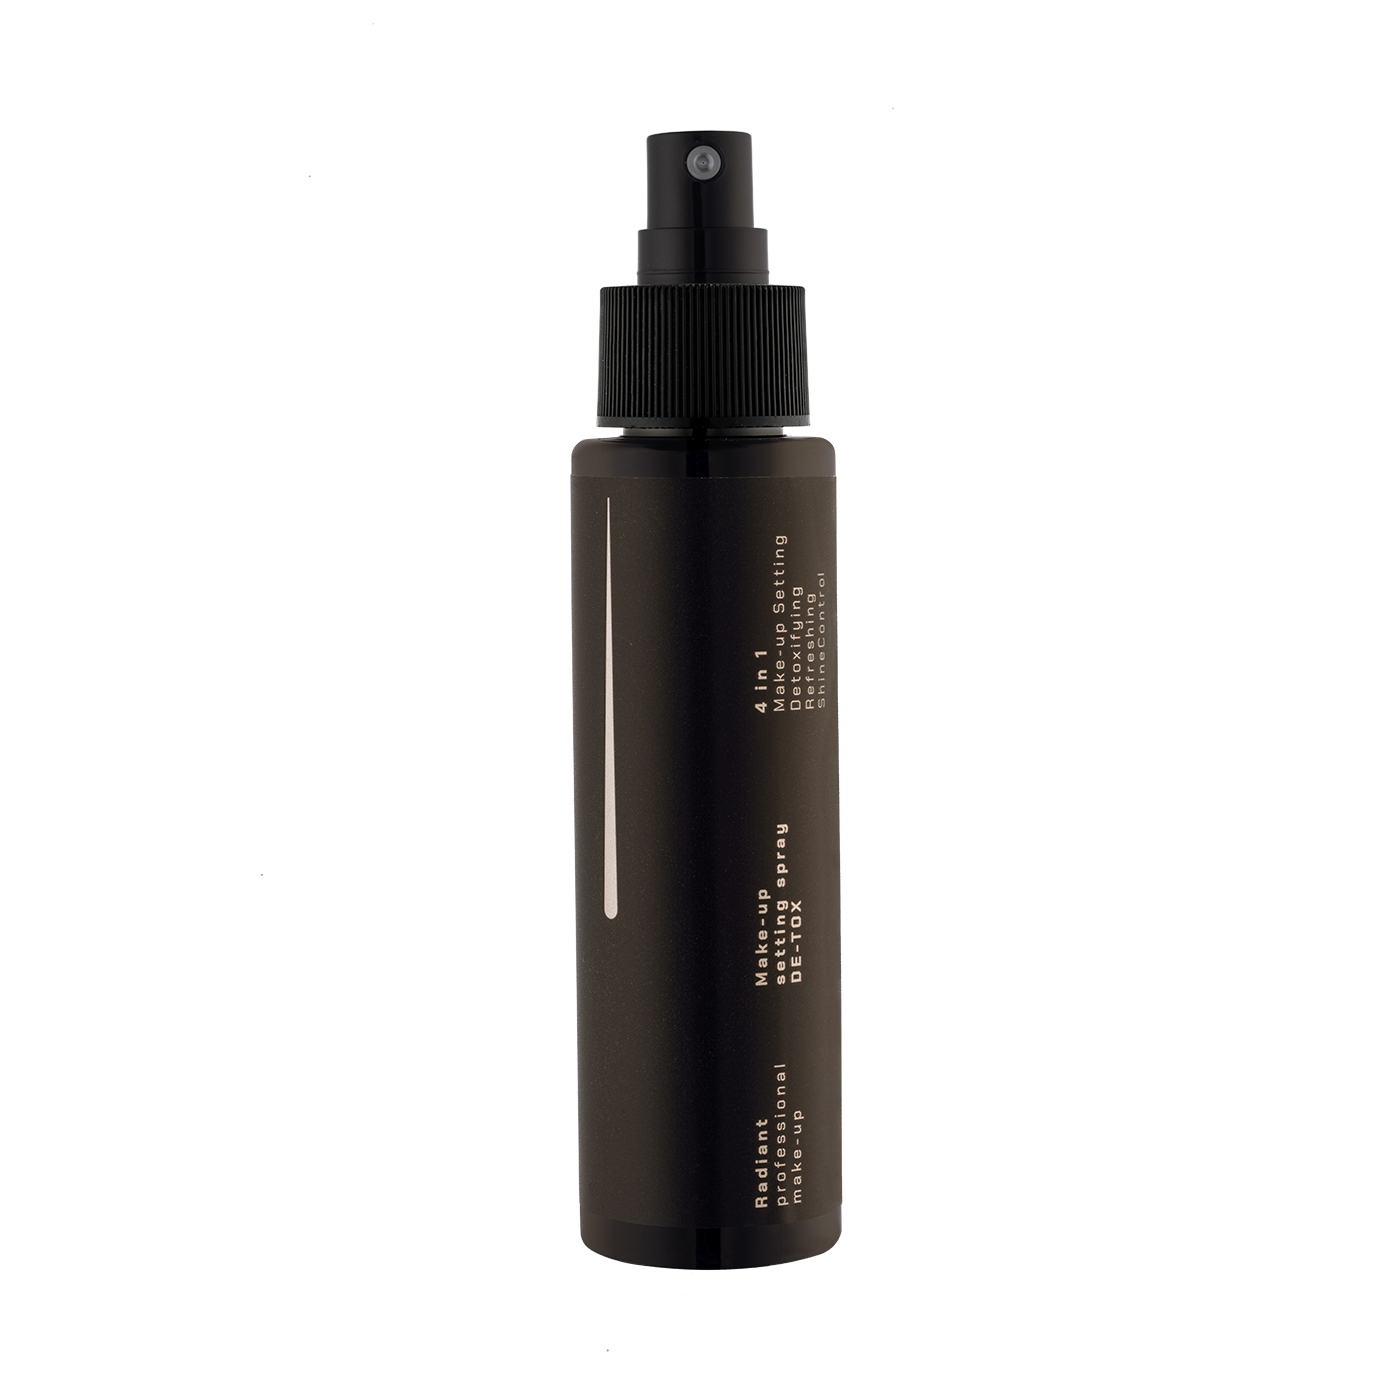 MAKE-UP SETTING SPRAY DE-TOX